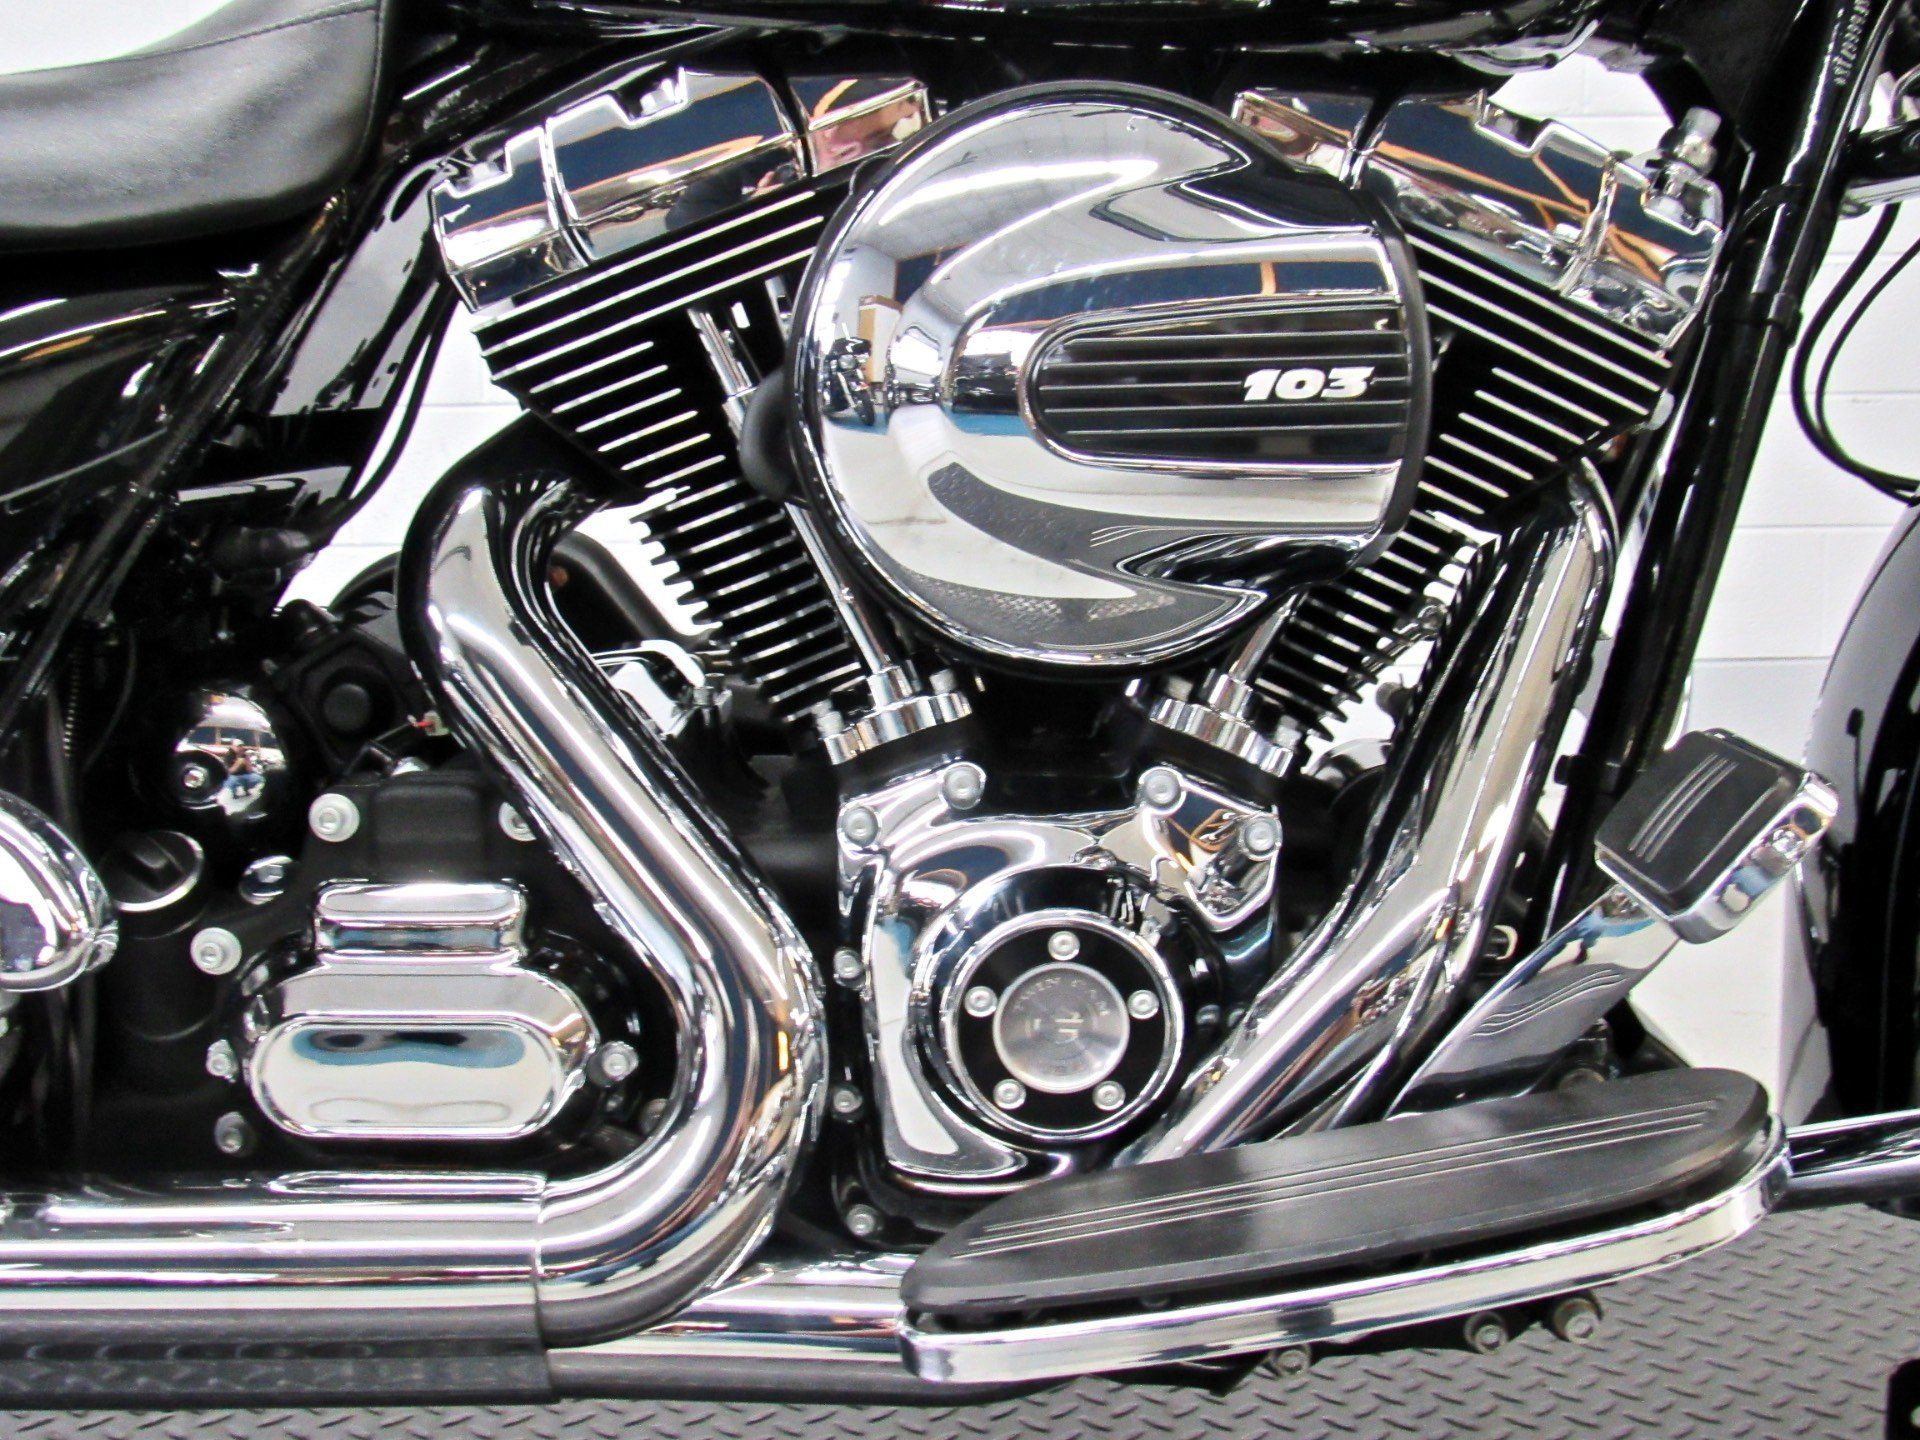 2015 Harley-Davidson Street Glide® Special in Fredericksburg, Virginia - Photo 14